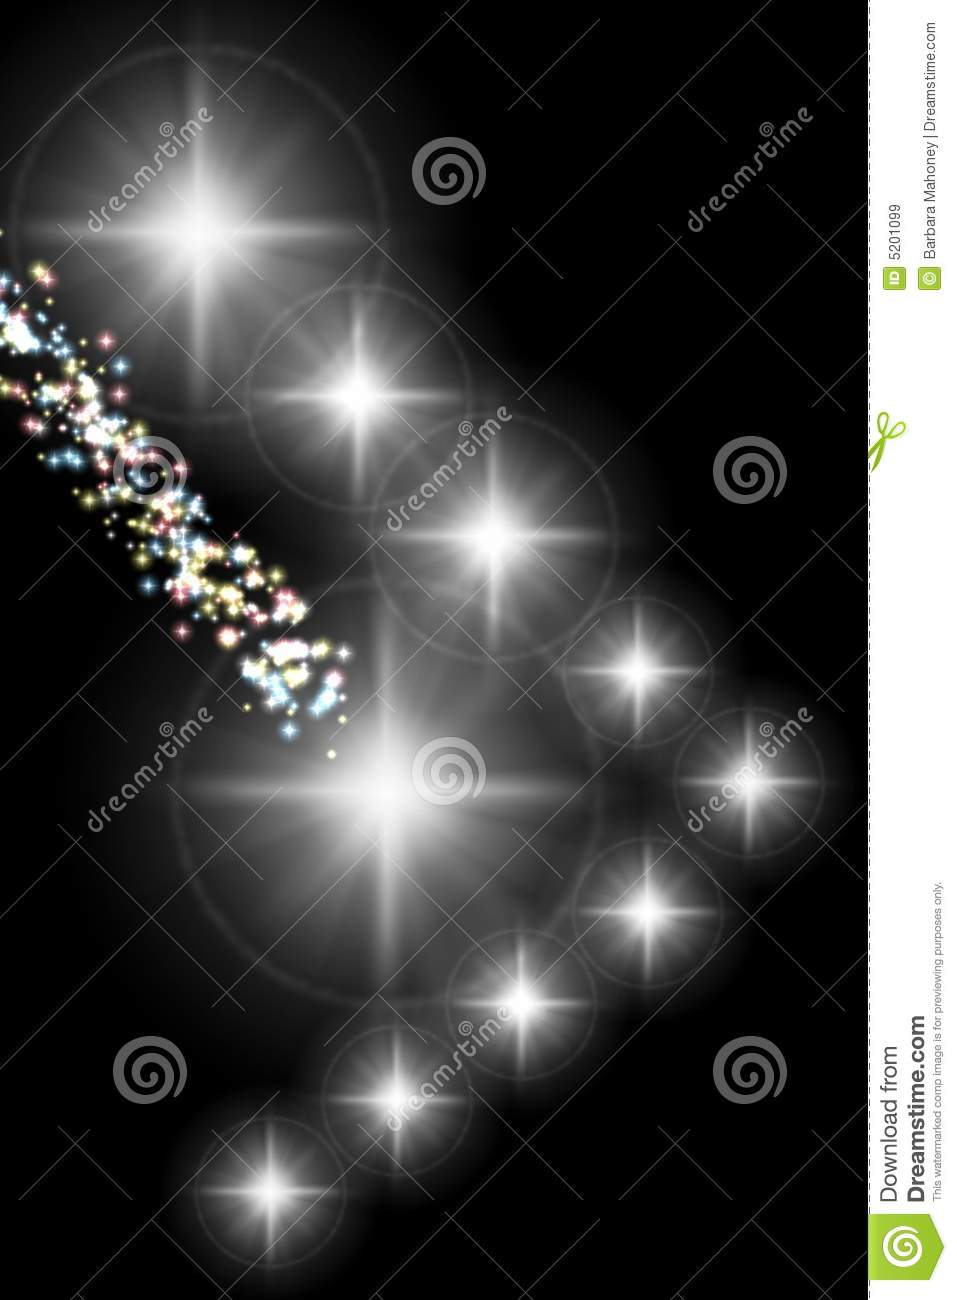 bling free o stars stock photo royalty cliparts vector diamond letter diamonds with vectors